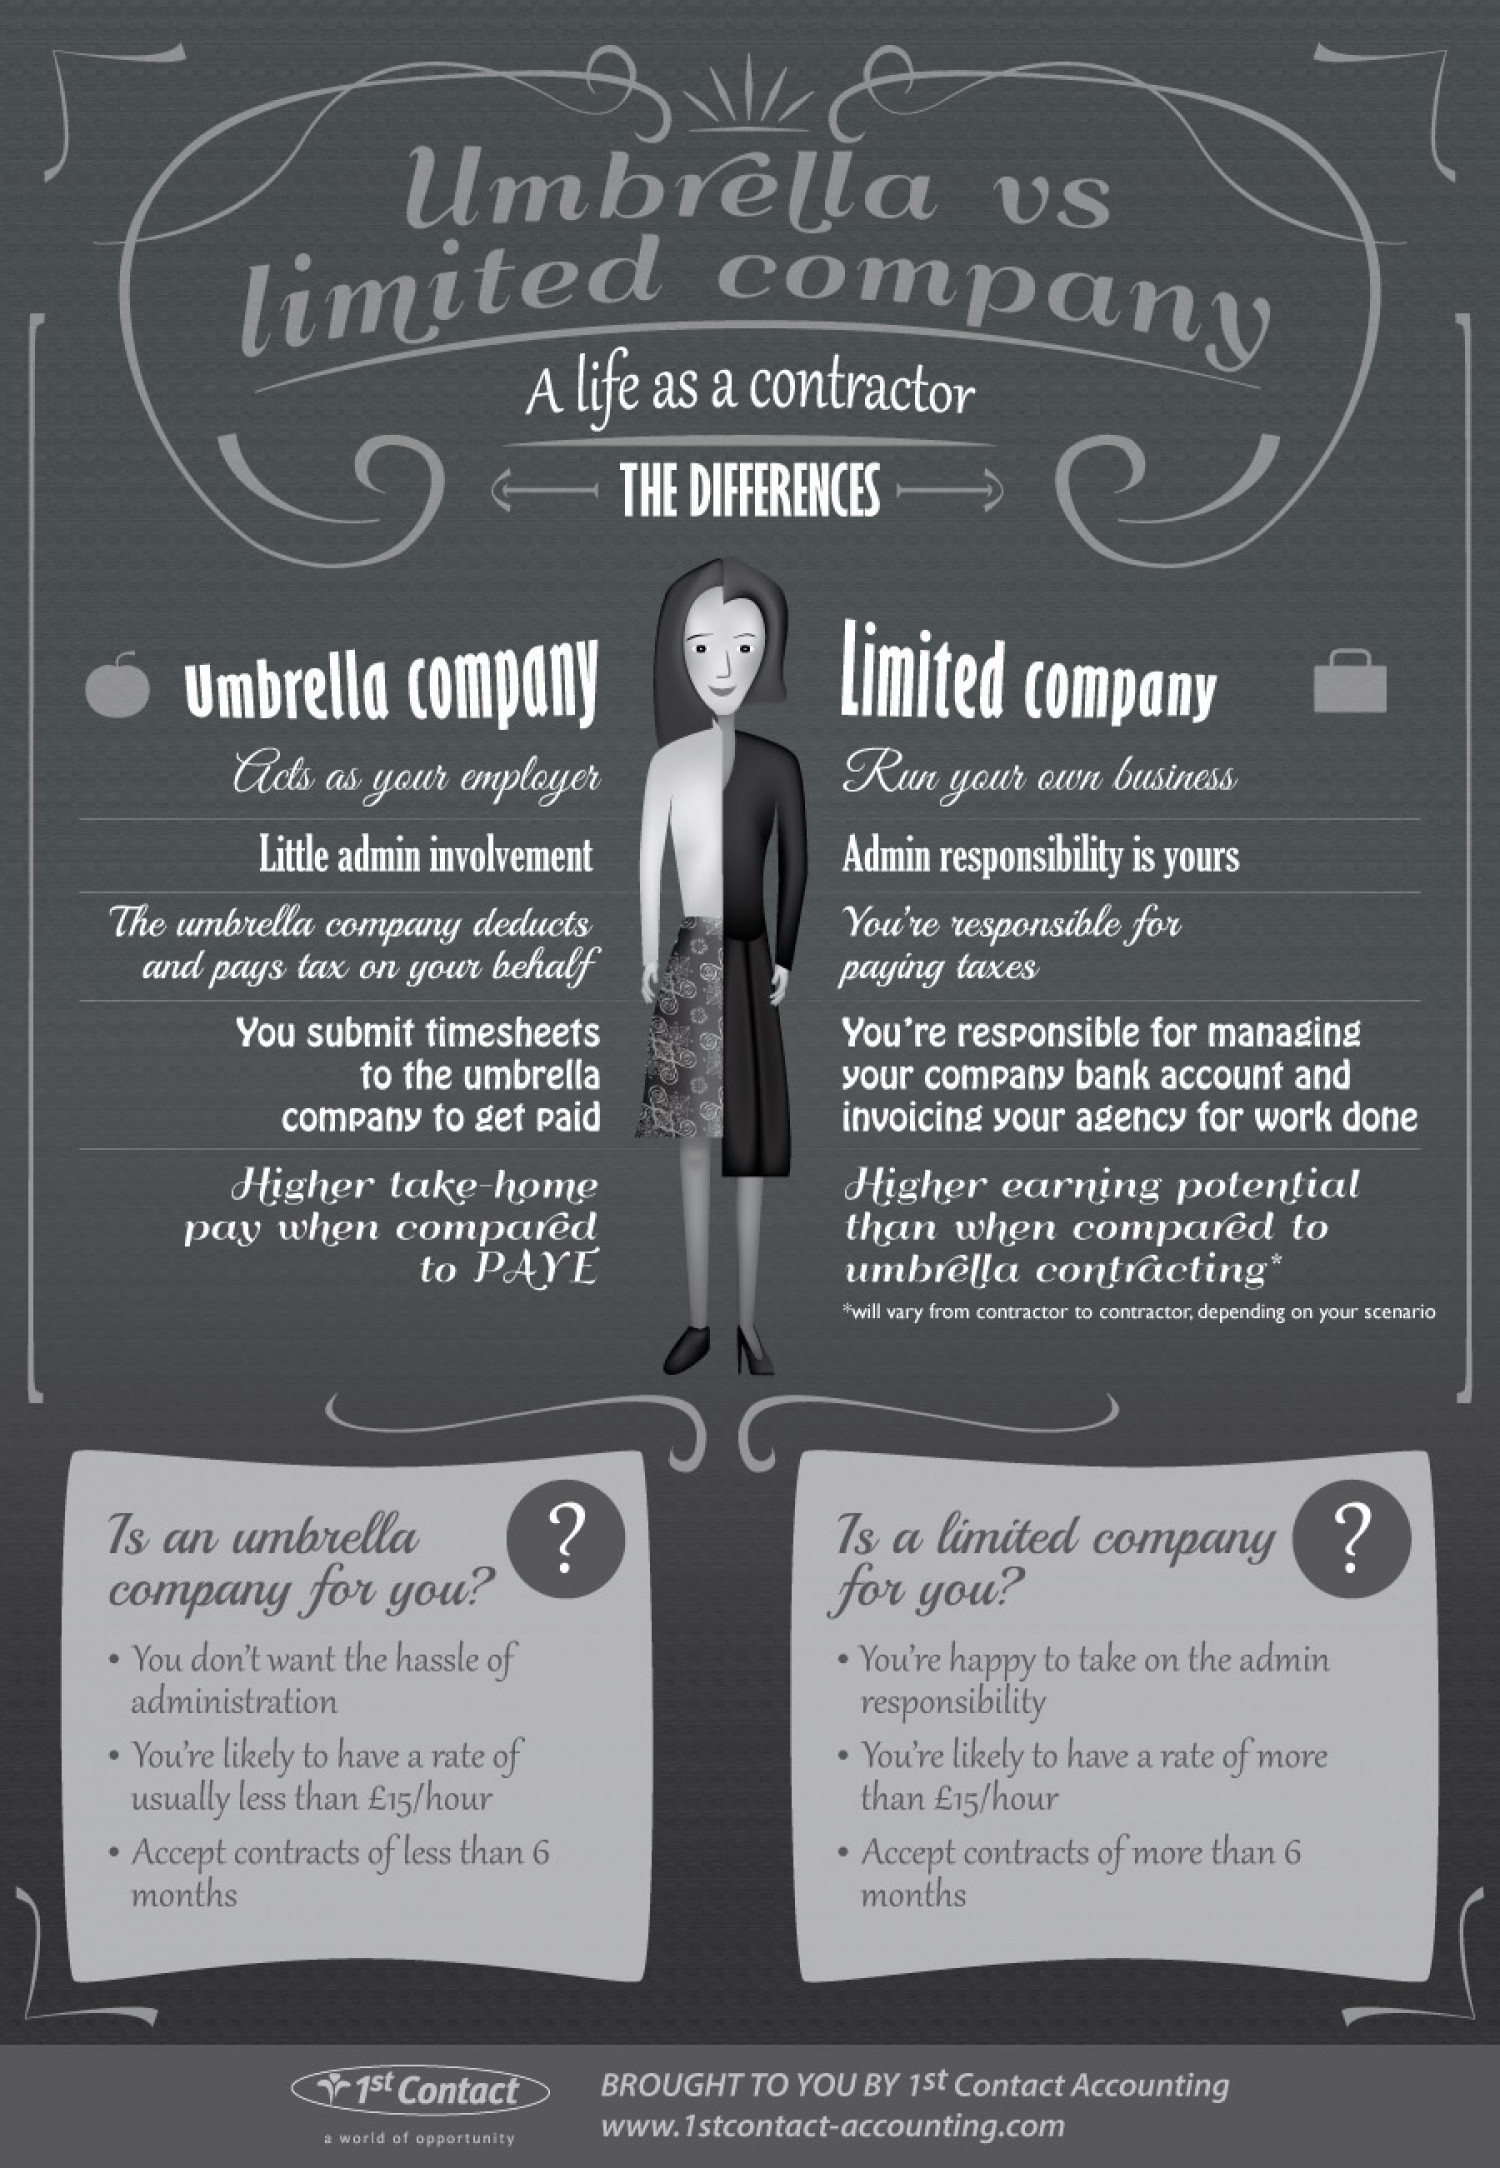 Umbrella vs limited company Infographic